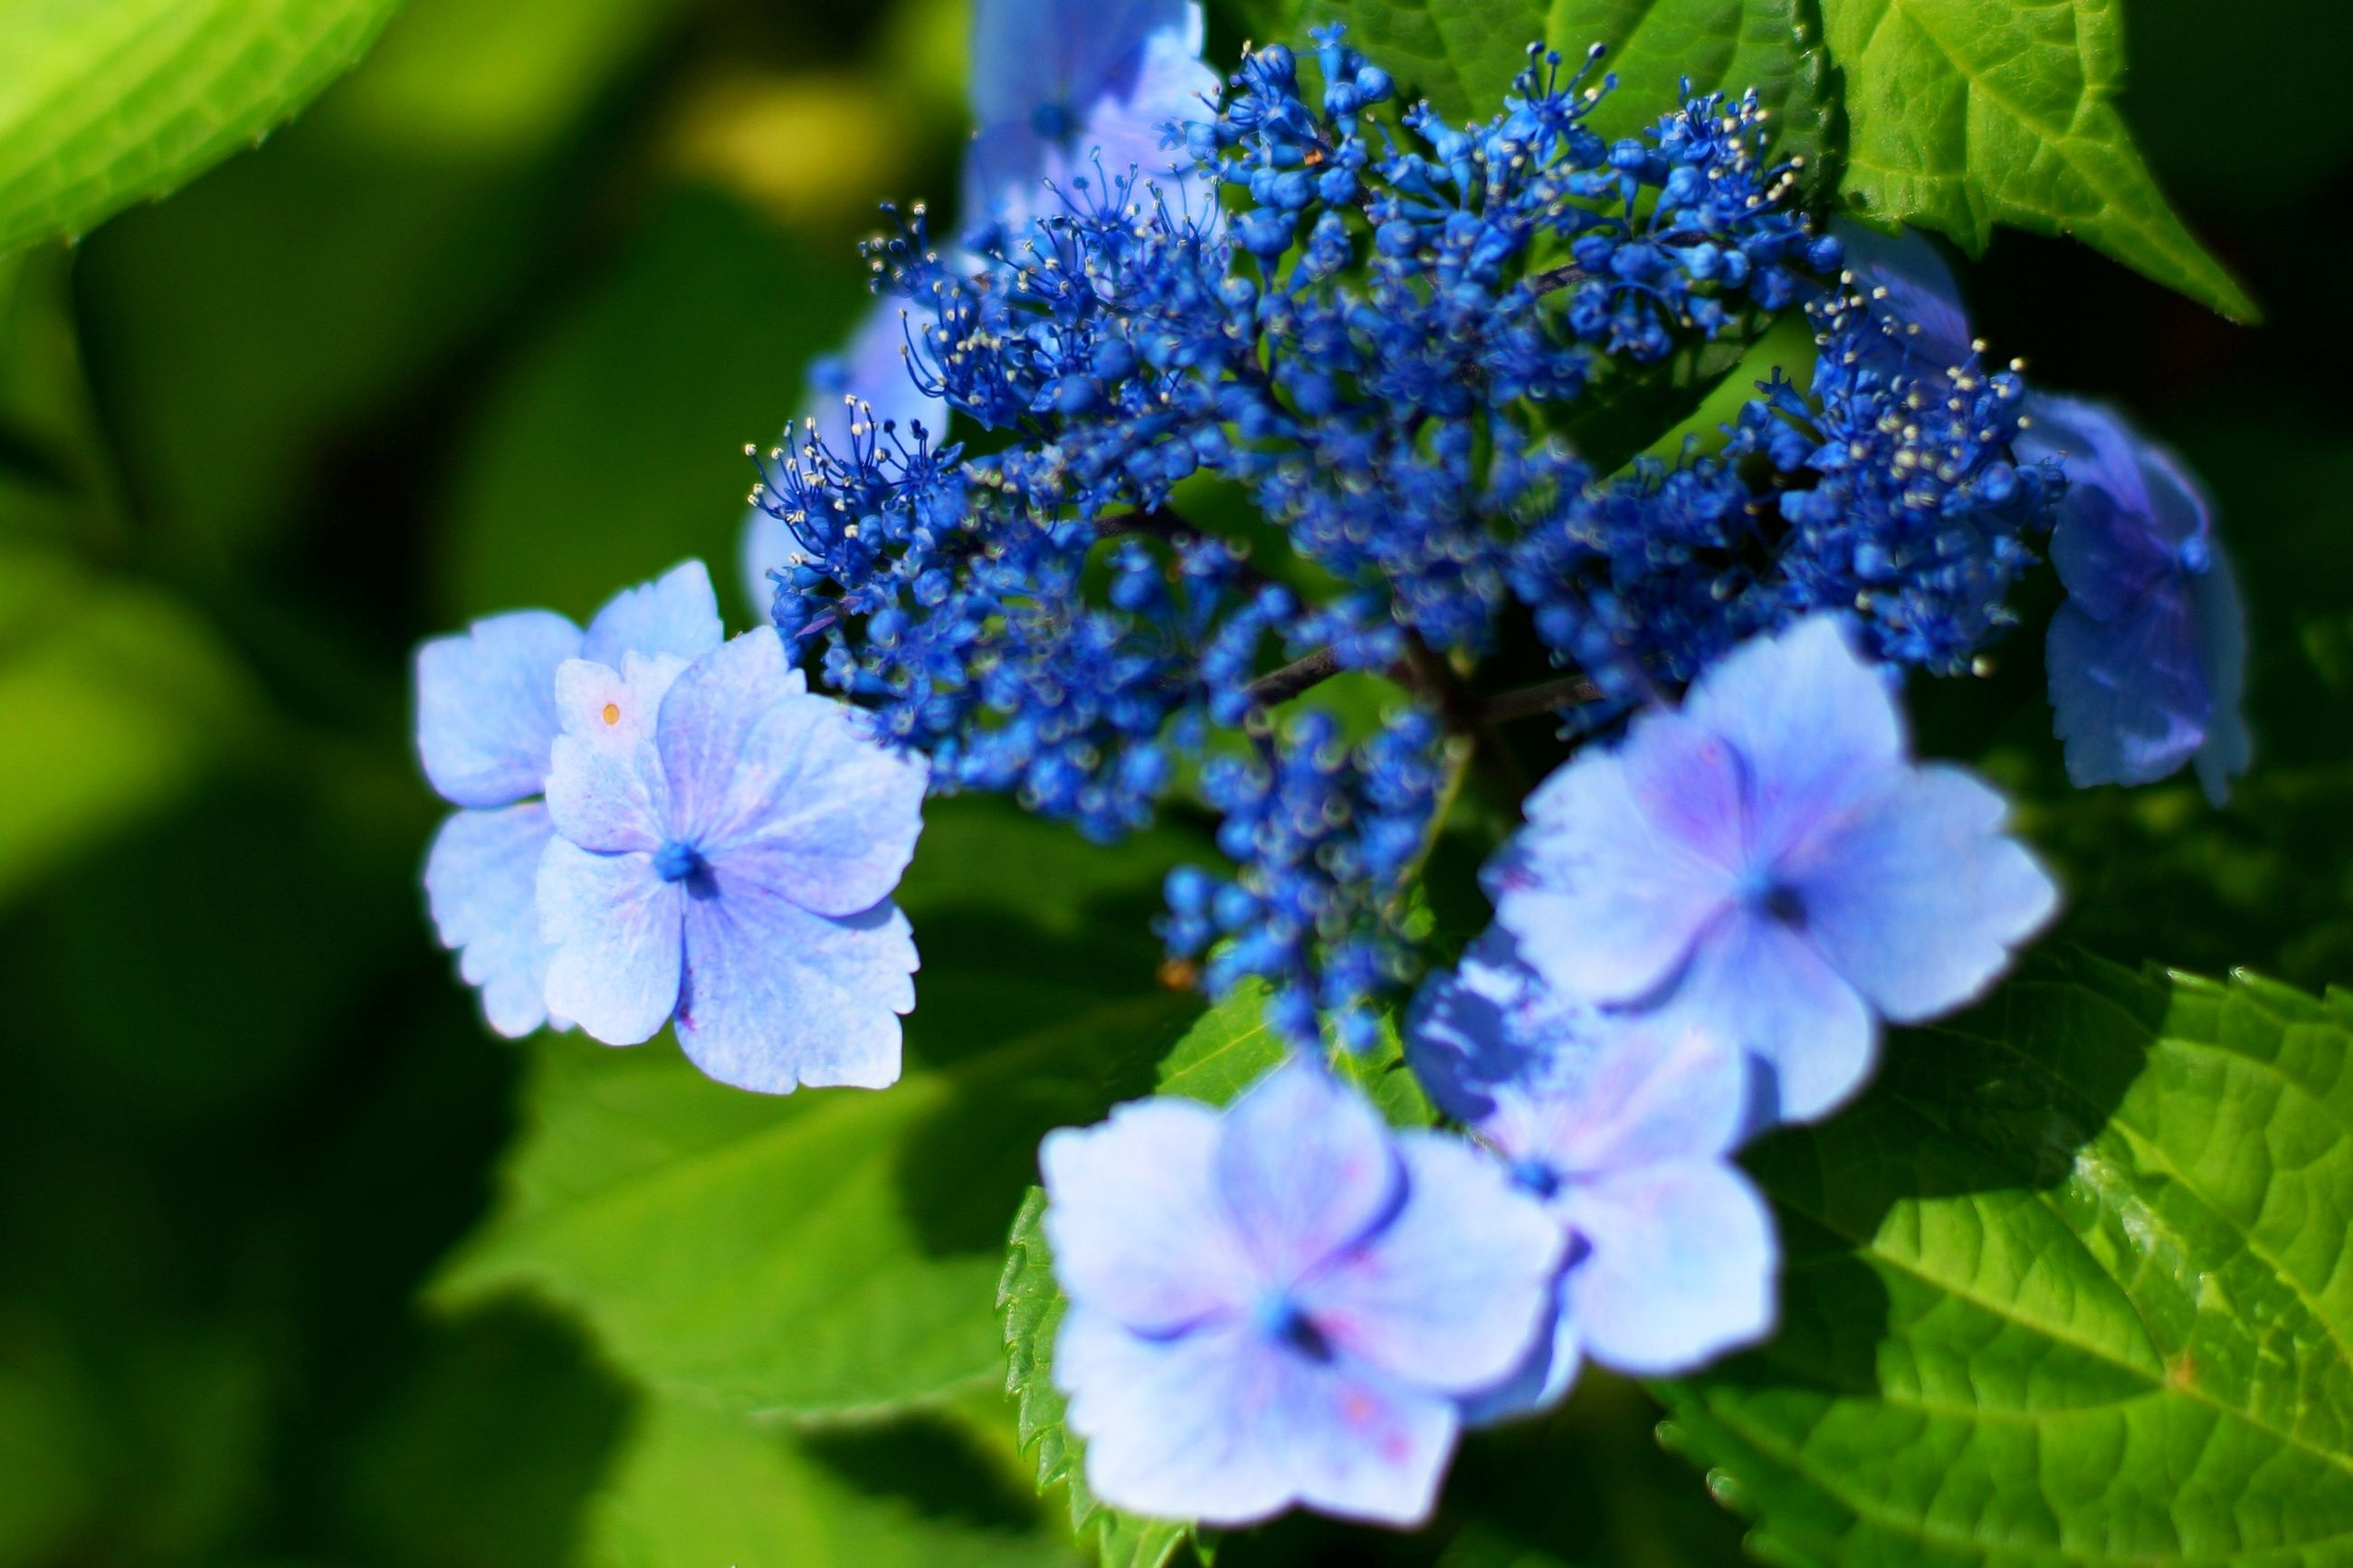 flower, freshness, purple, fragility, growth, petal, flower head, beauty in nature, close-up, focus on foreground, nature, blooming, hydrangea, plant, leaf, blue, in bloom, park - man made space, blossom, day